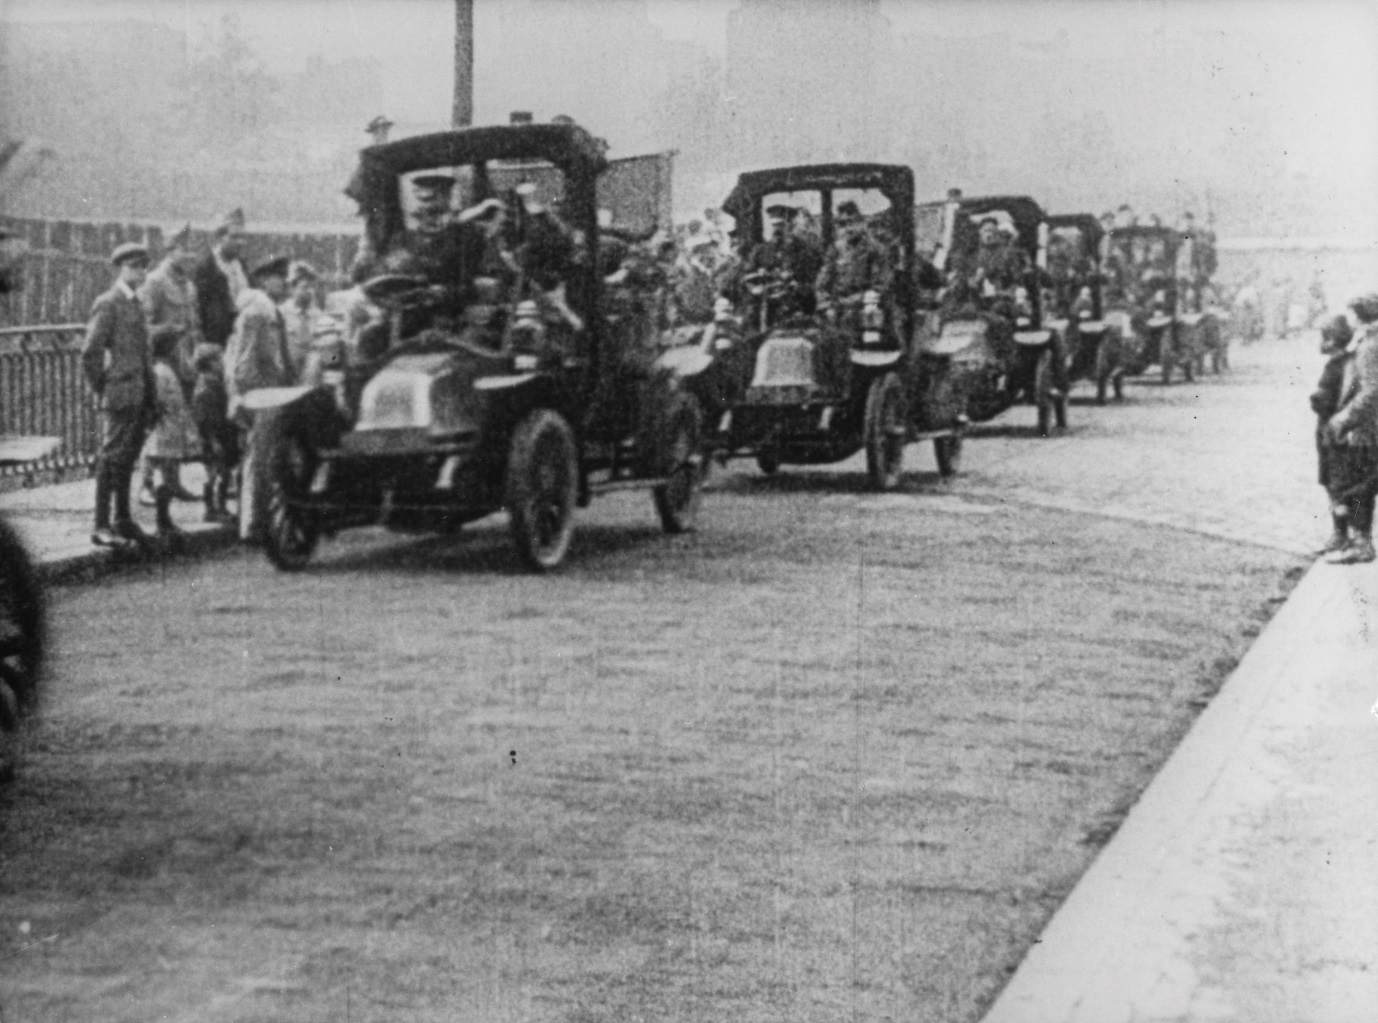 """Figure 6: Renault Type AG1's line up in France to take troops to the Marne battlefield in September 1914. Reference: WWI Canada. """"France recalls centennial of 'Taxis of the Marne,' desperate operation to save Paris in the First World War"""". URL:  http://ww1.canada.com/"""